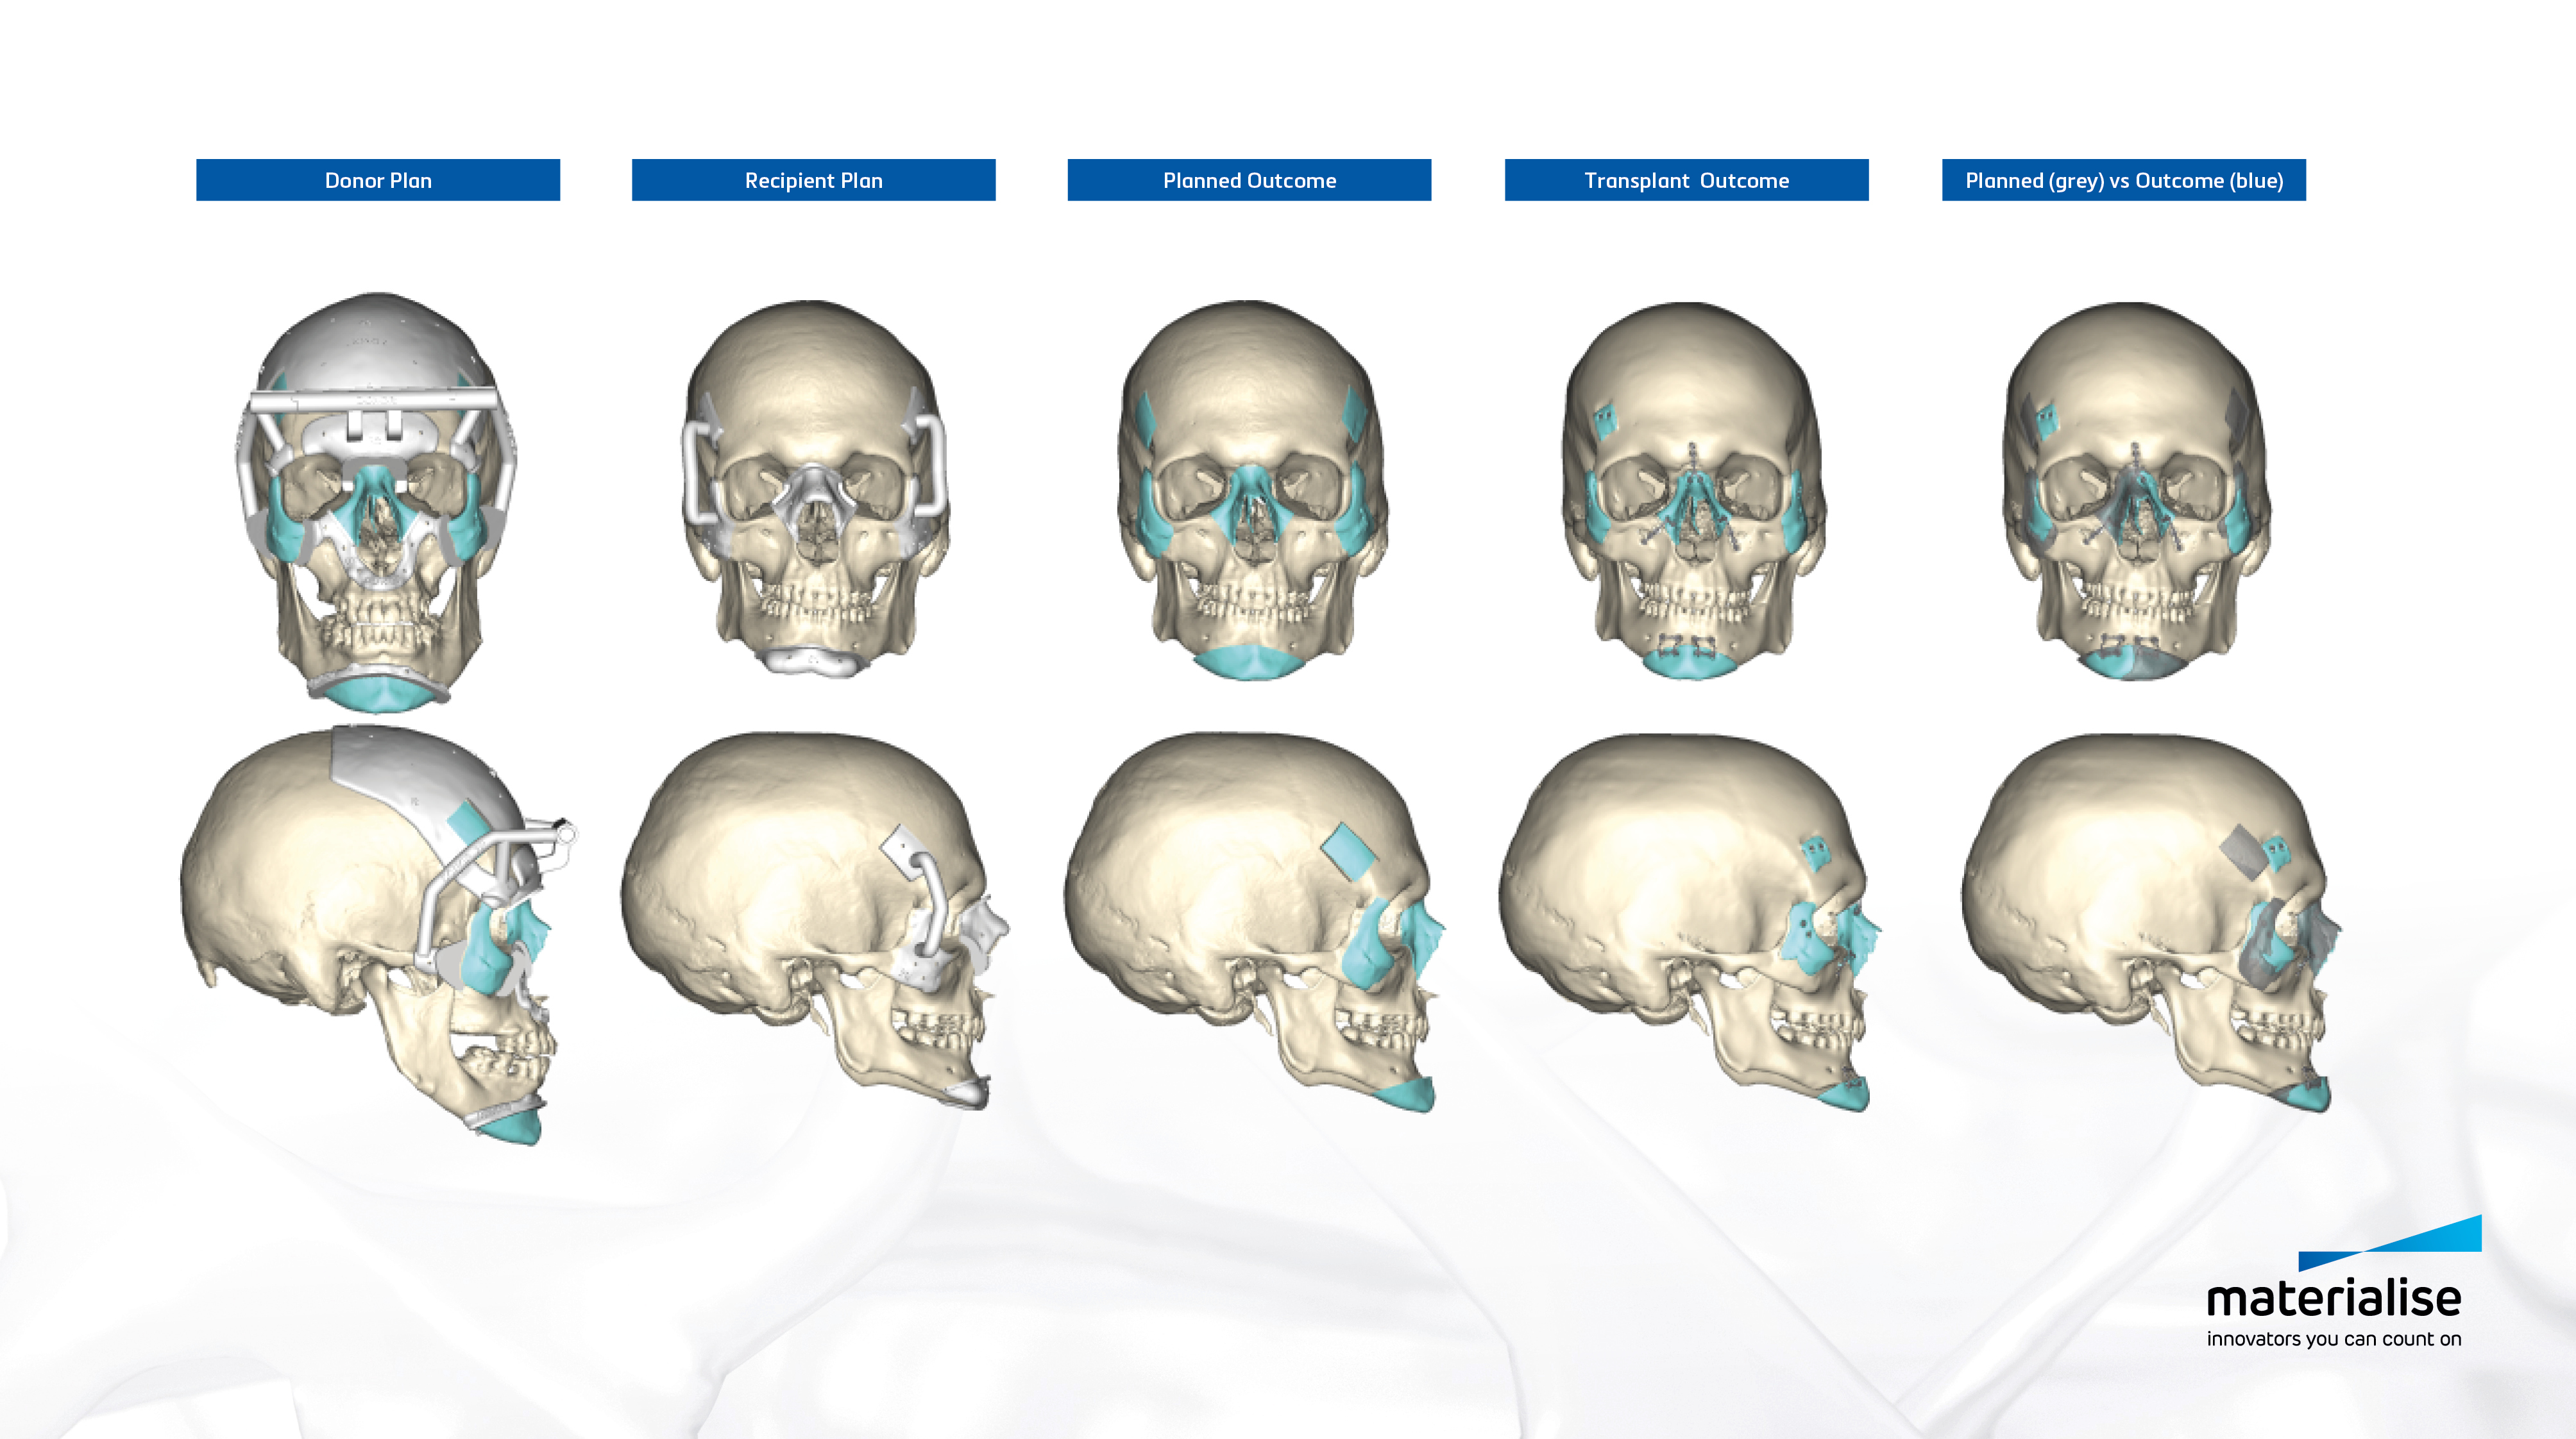 Pre-surgical planning made it possible for surgeons to virtually select and position various medical implants to predict the optimal anatomical fit.